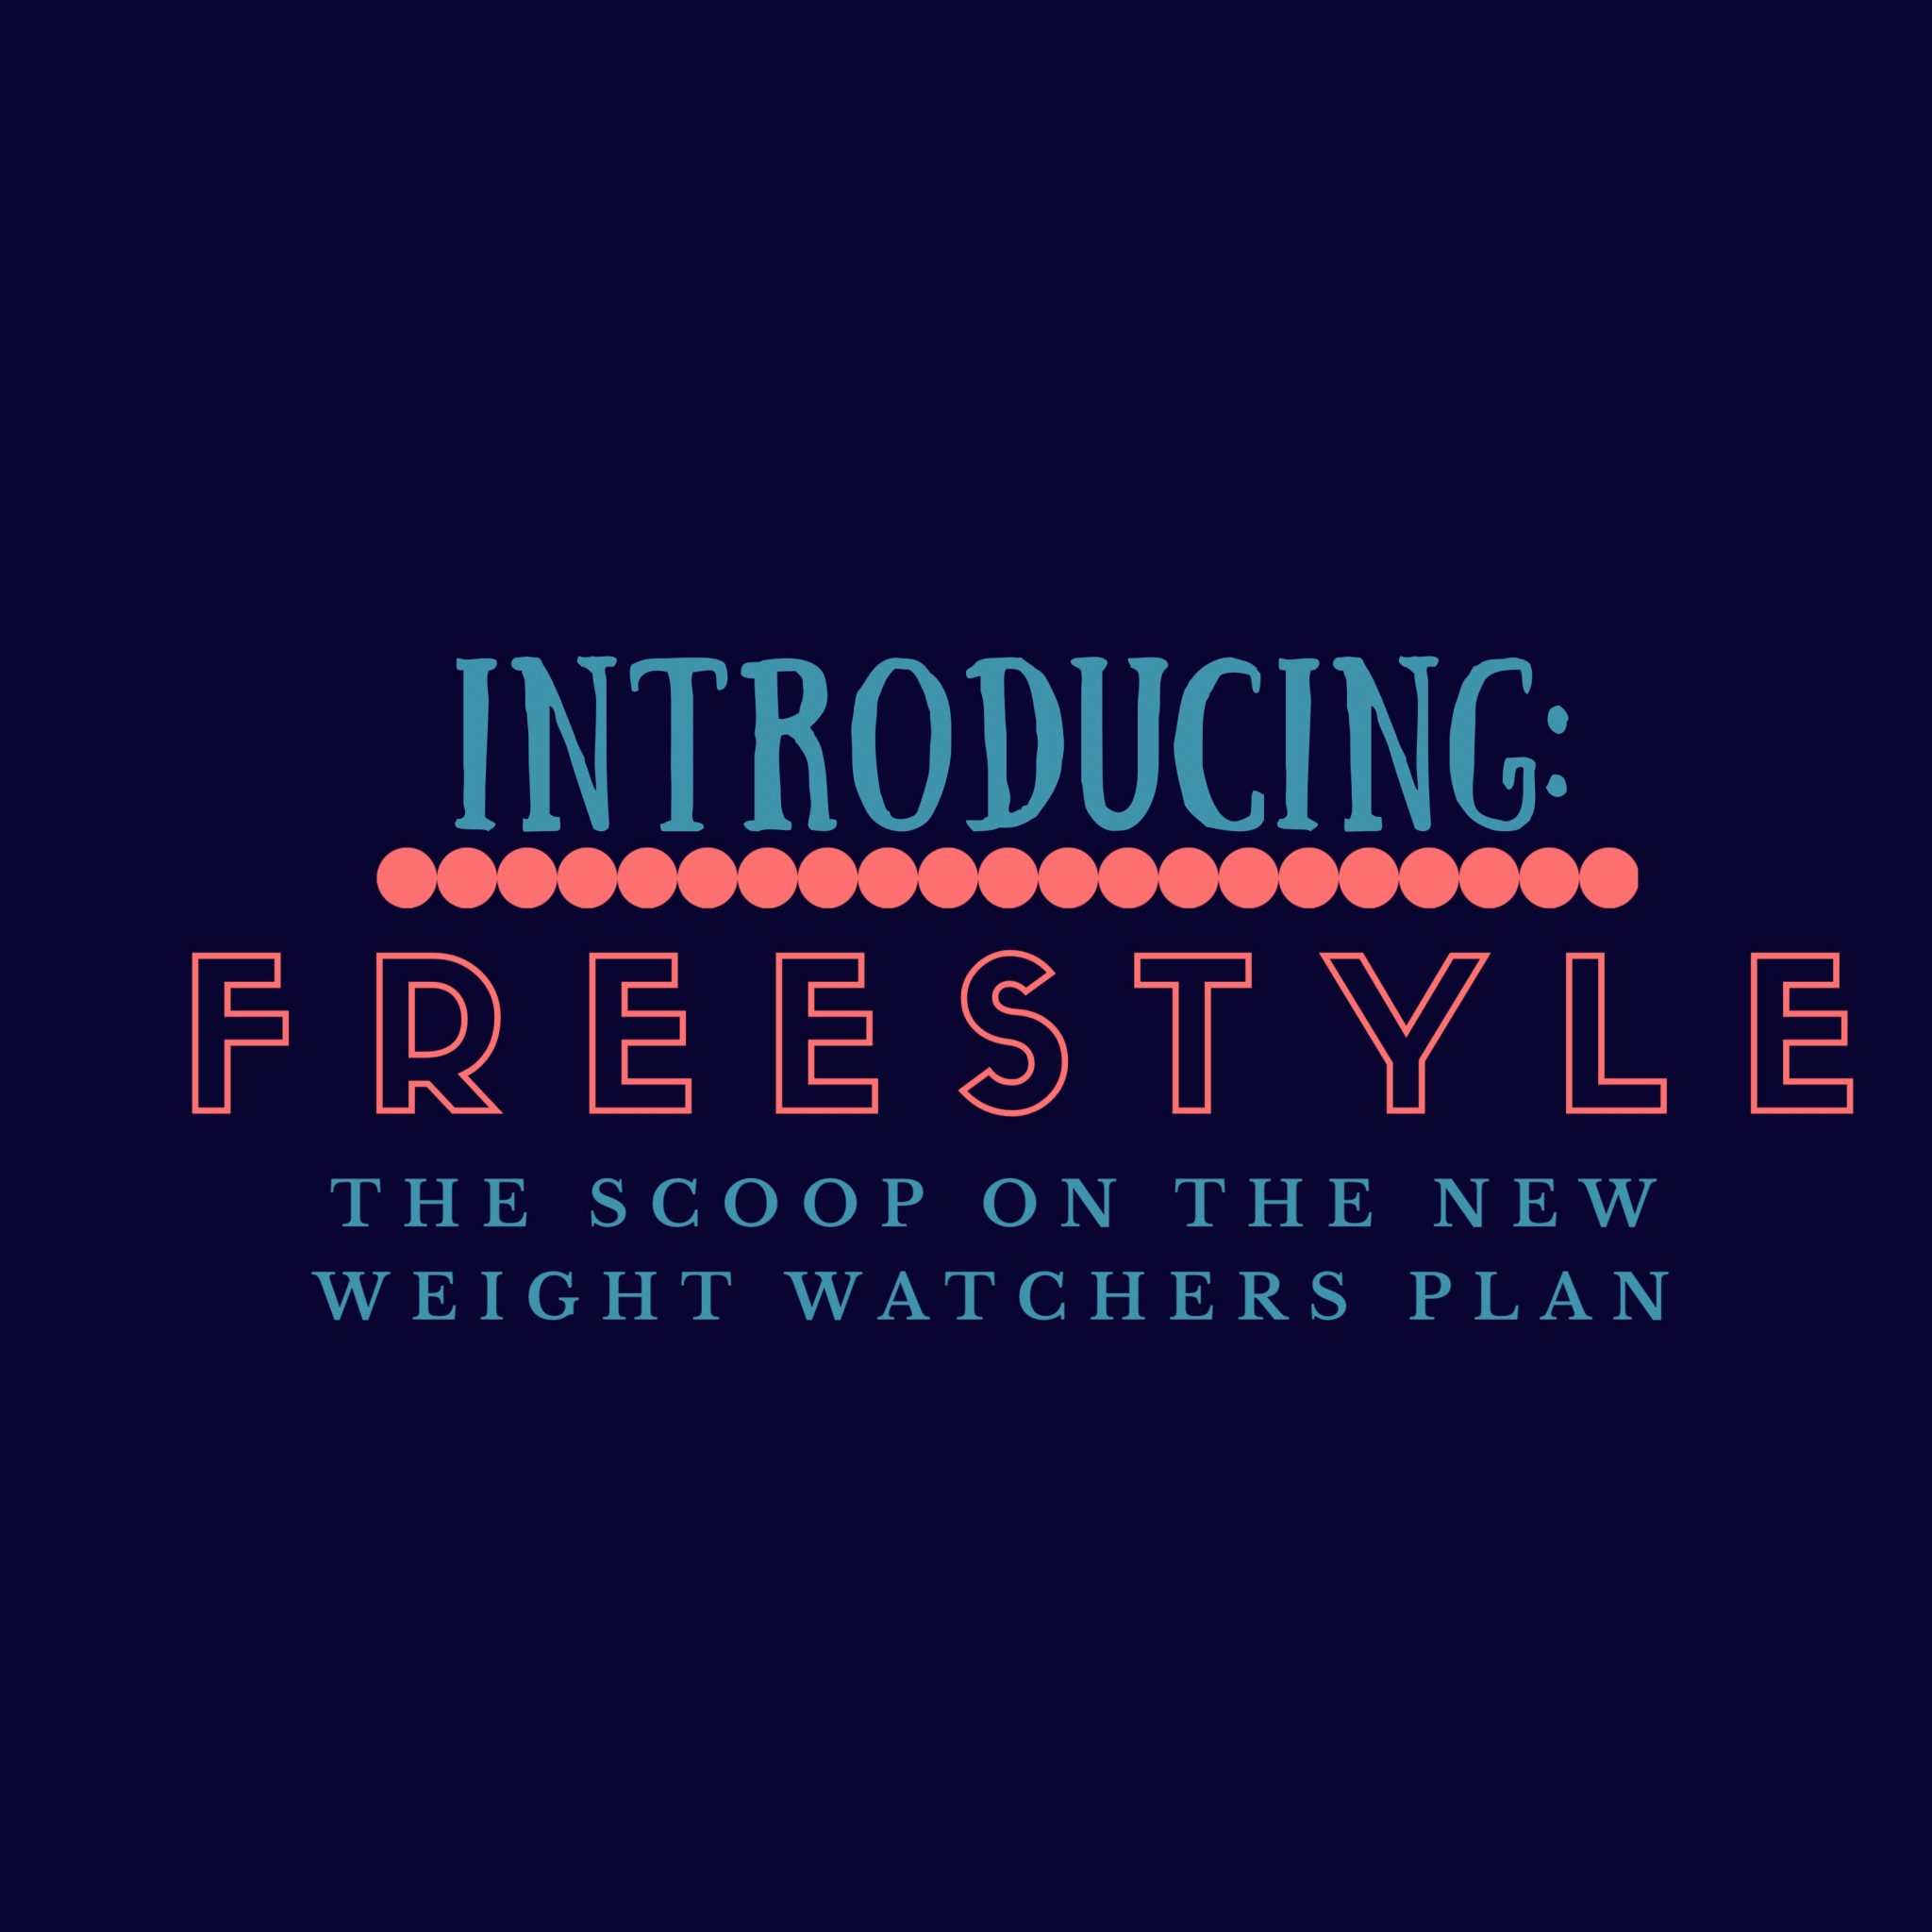 introducing freestyle the scoop on the new weight watchers plan